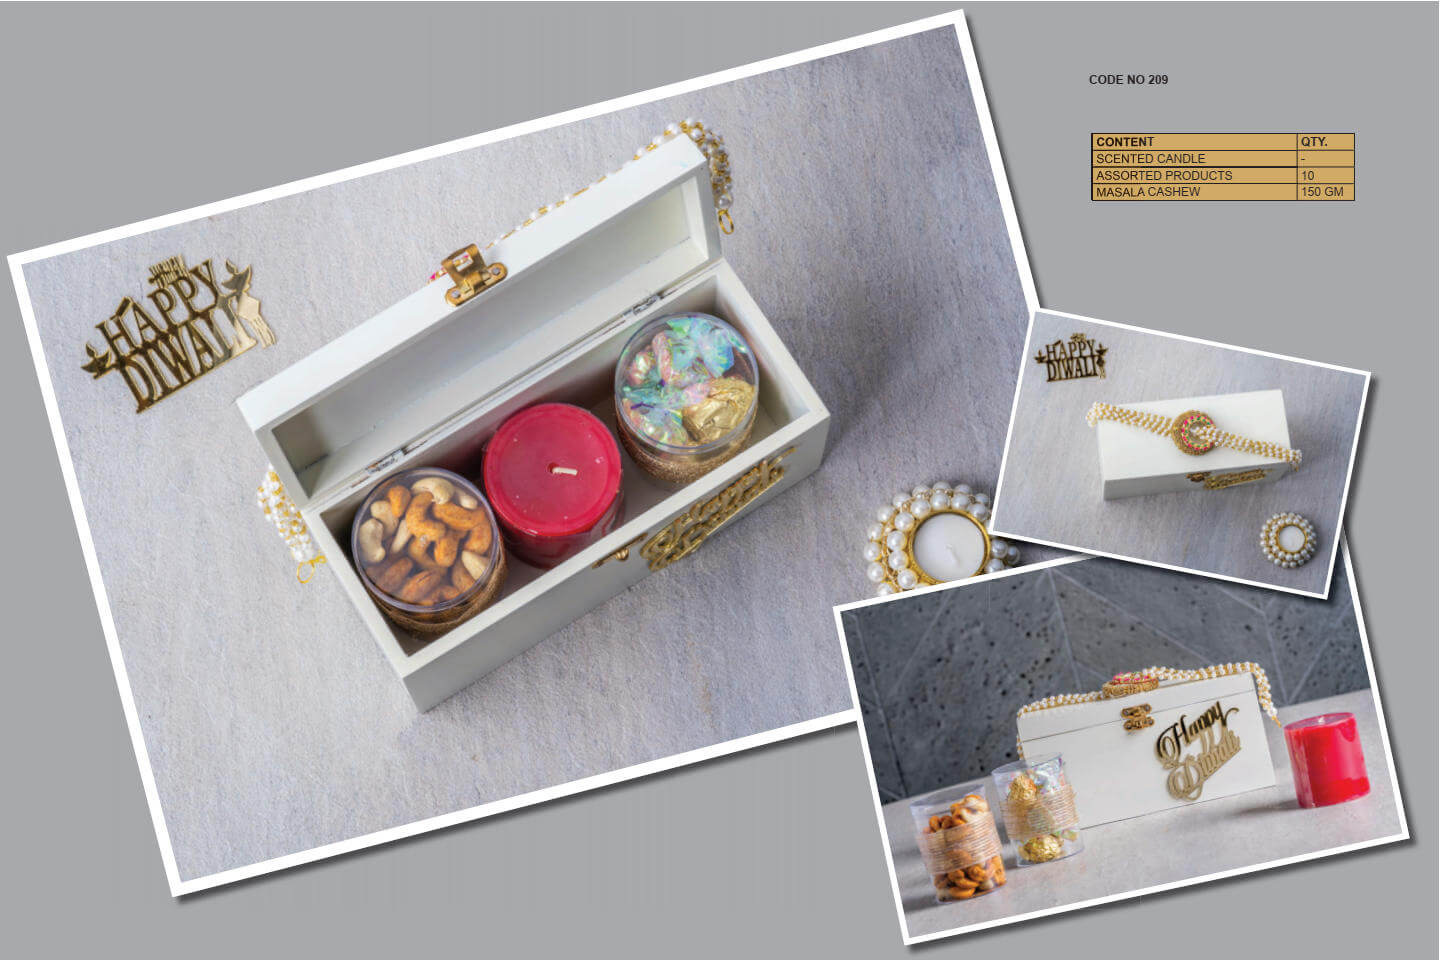 Diwali Gifts For Employees 2021 CODE NO 209